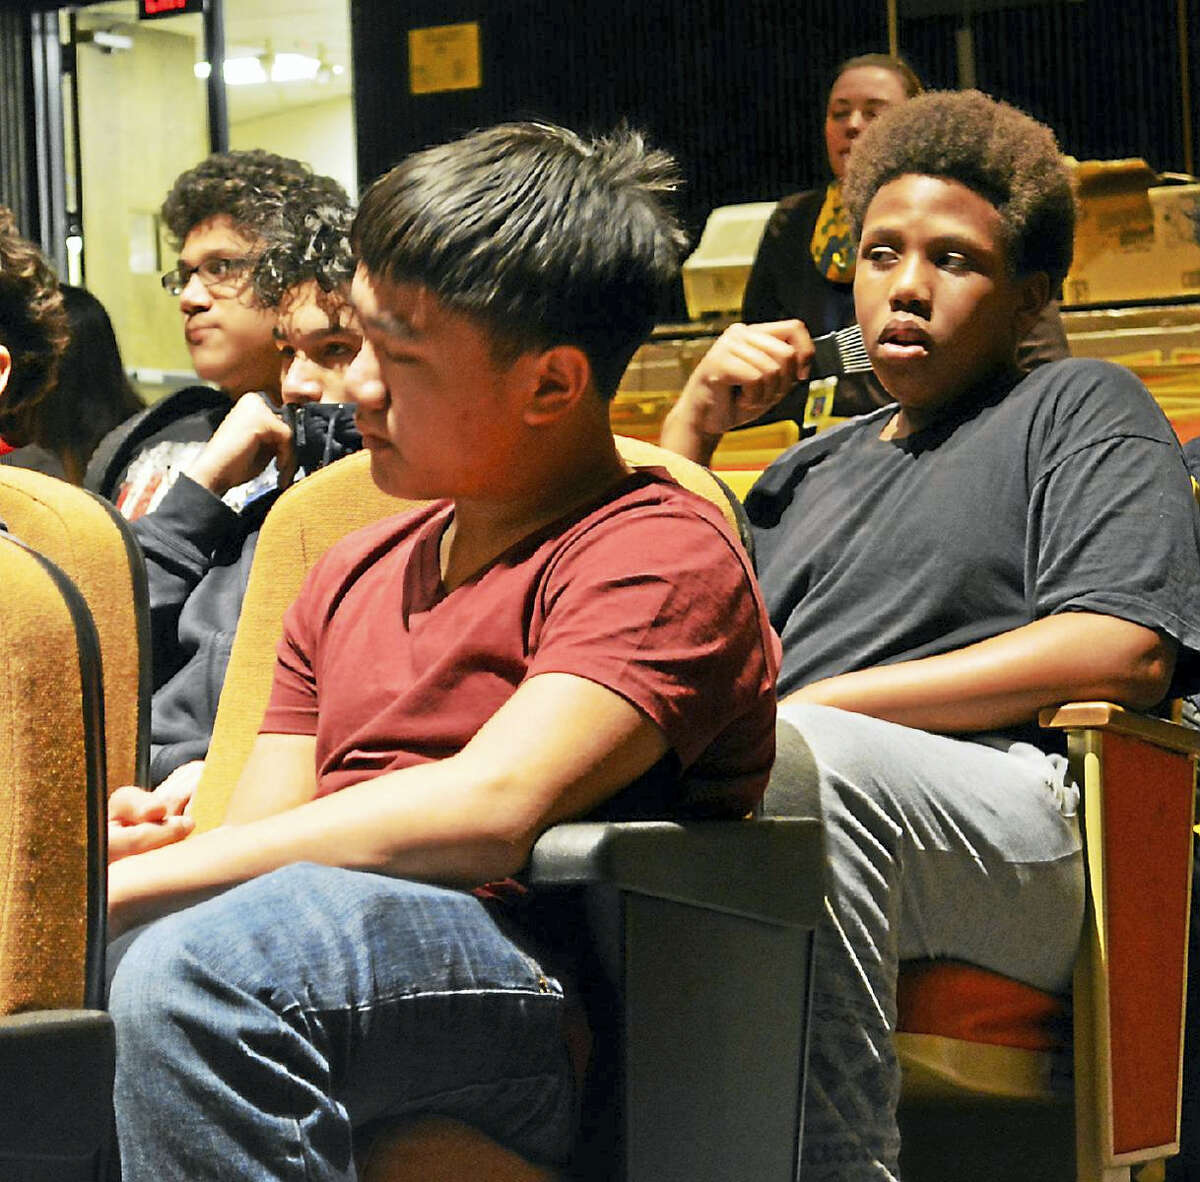 Successful athletes like Highsmith and Carrillo, all high-achieving students in or who graduated from the Middletown school system in different stages of their careers and lives, urged the 30 youth in the program to put their schoolwork first before sports to ensure their future success.